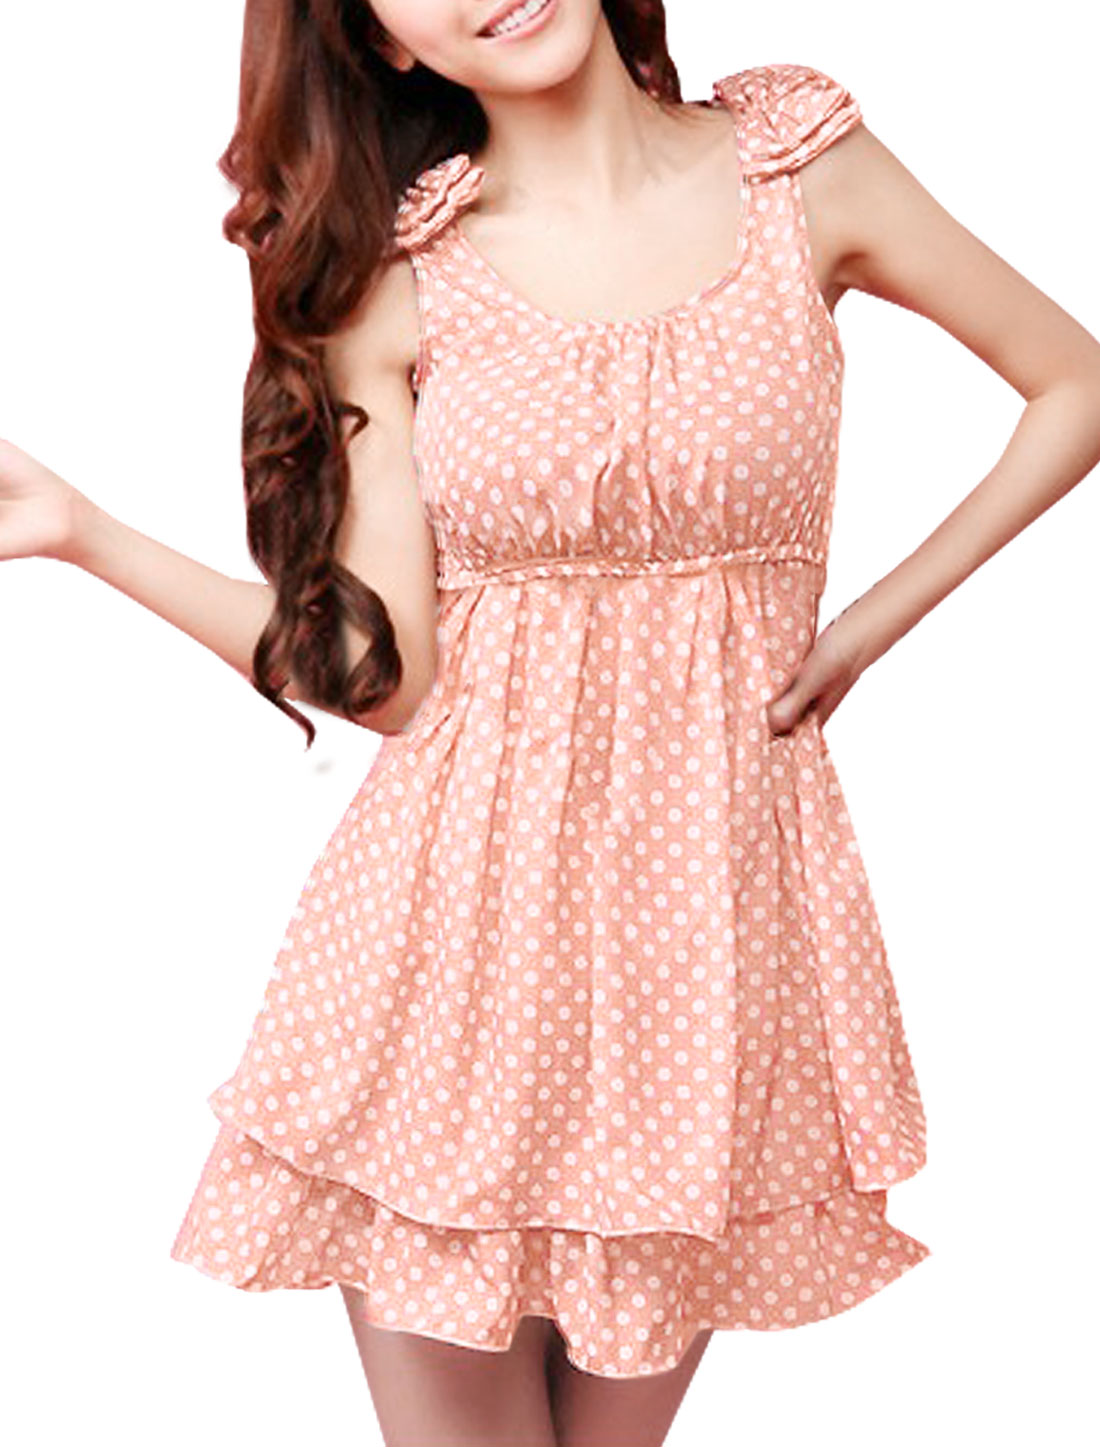 Ladies Chic Scoop Neck Sleeveless Dots Pattern Light Pink Mini Dress XS